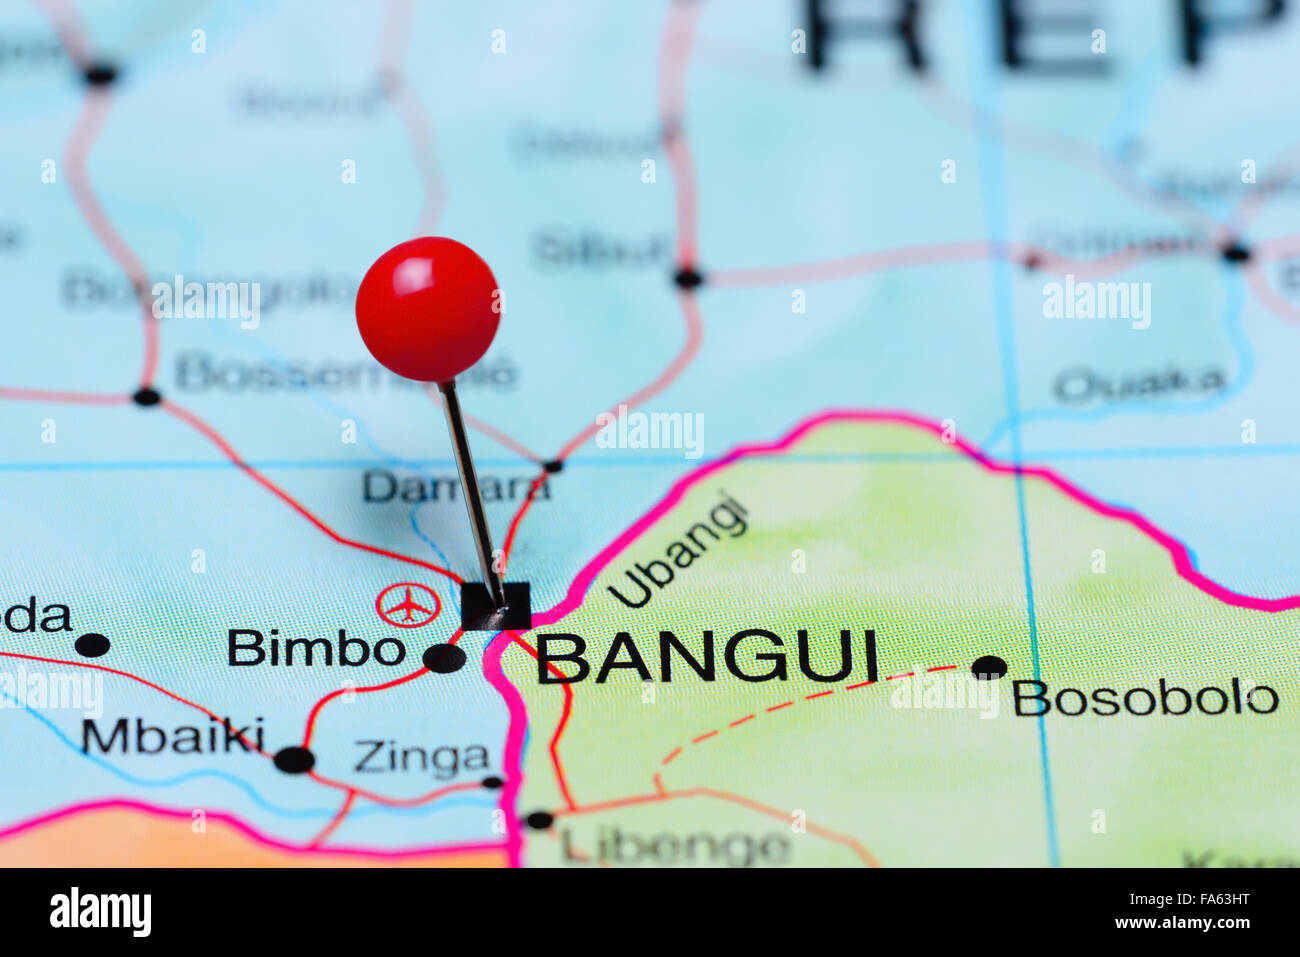 Bangui pinned on a map of Africa Stock Photo 92332964 Alamy